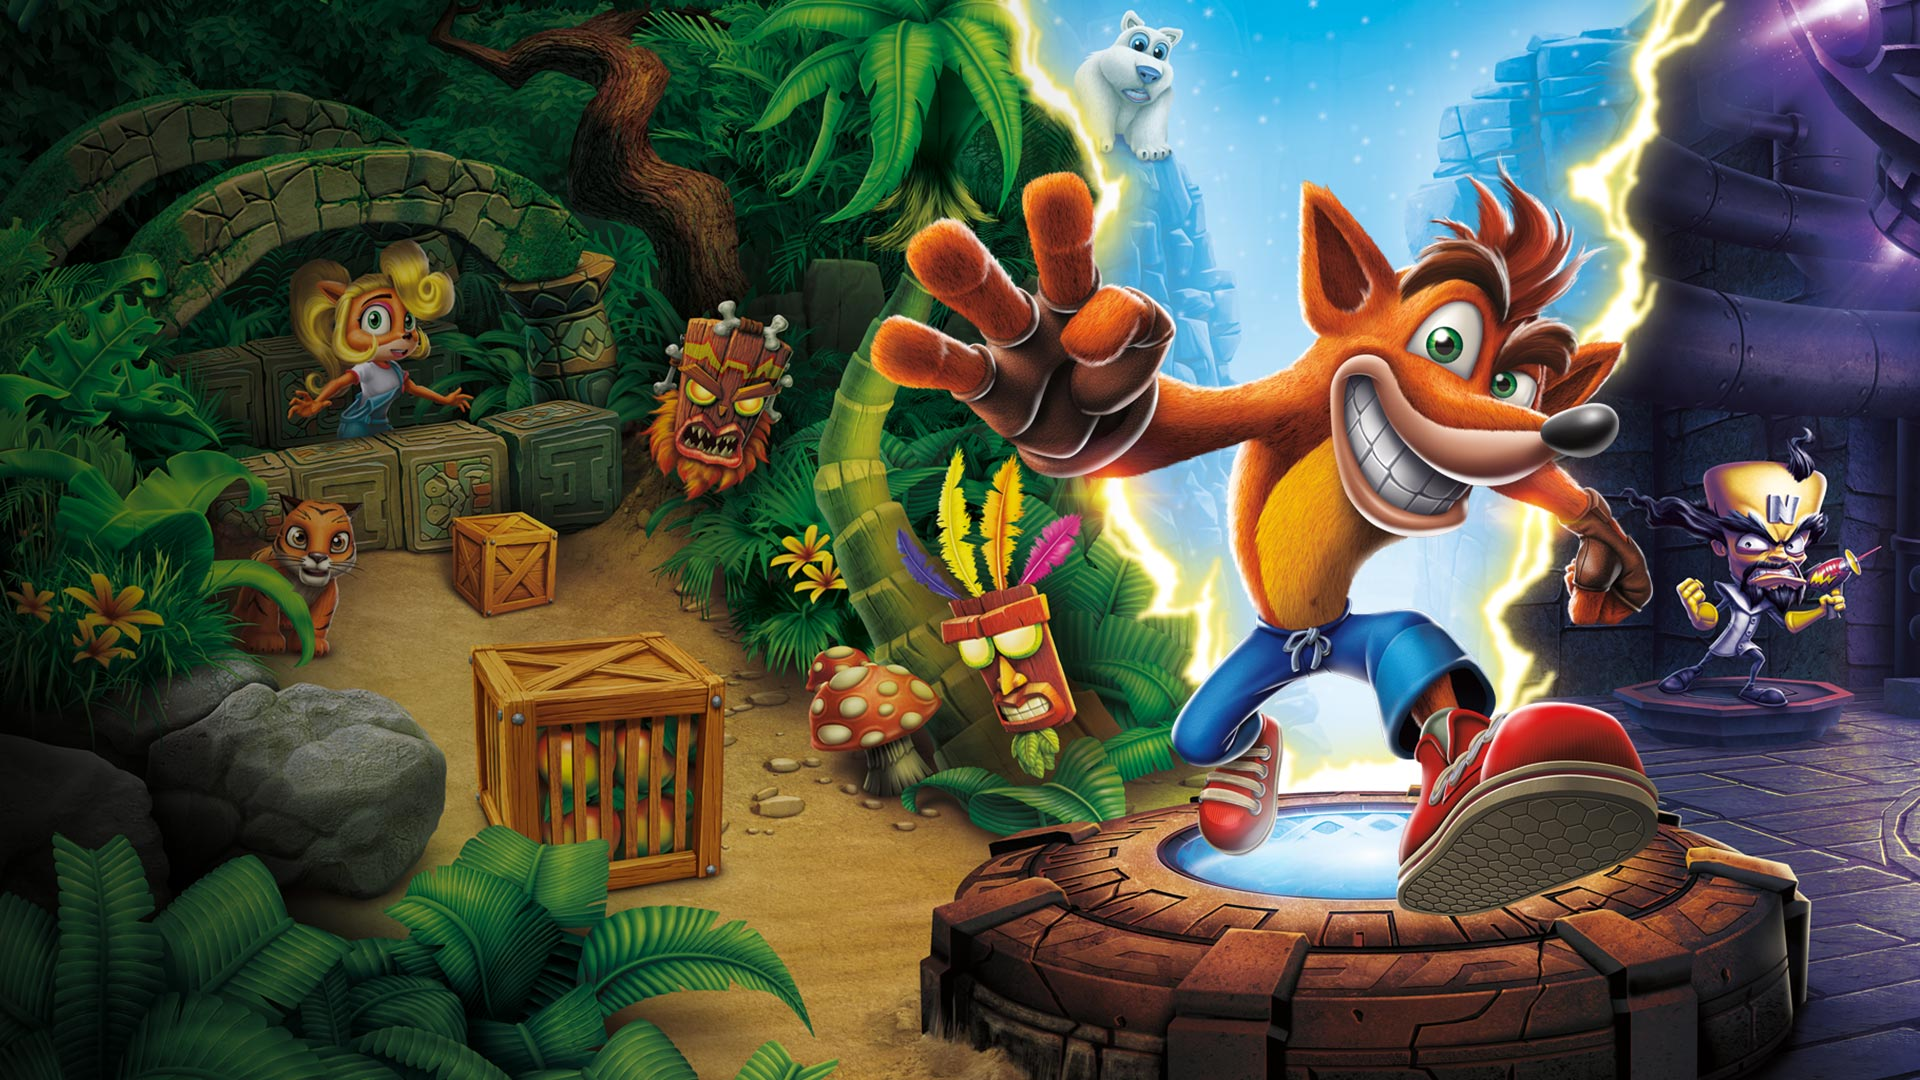 Crash Bandicoot HD Wallpapers and Background Images   stmednet 1920x1080